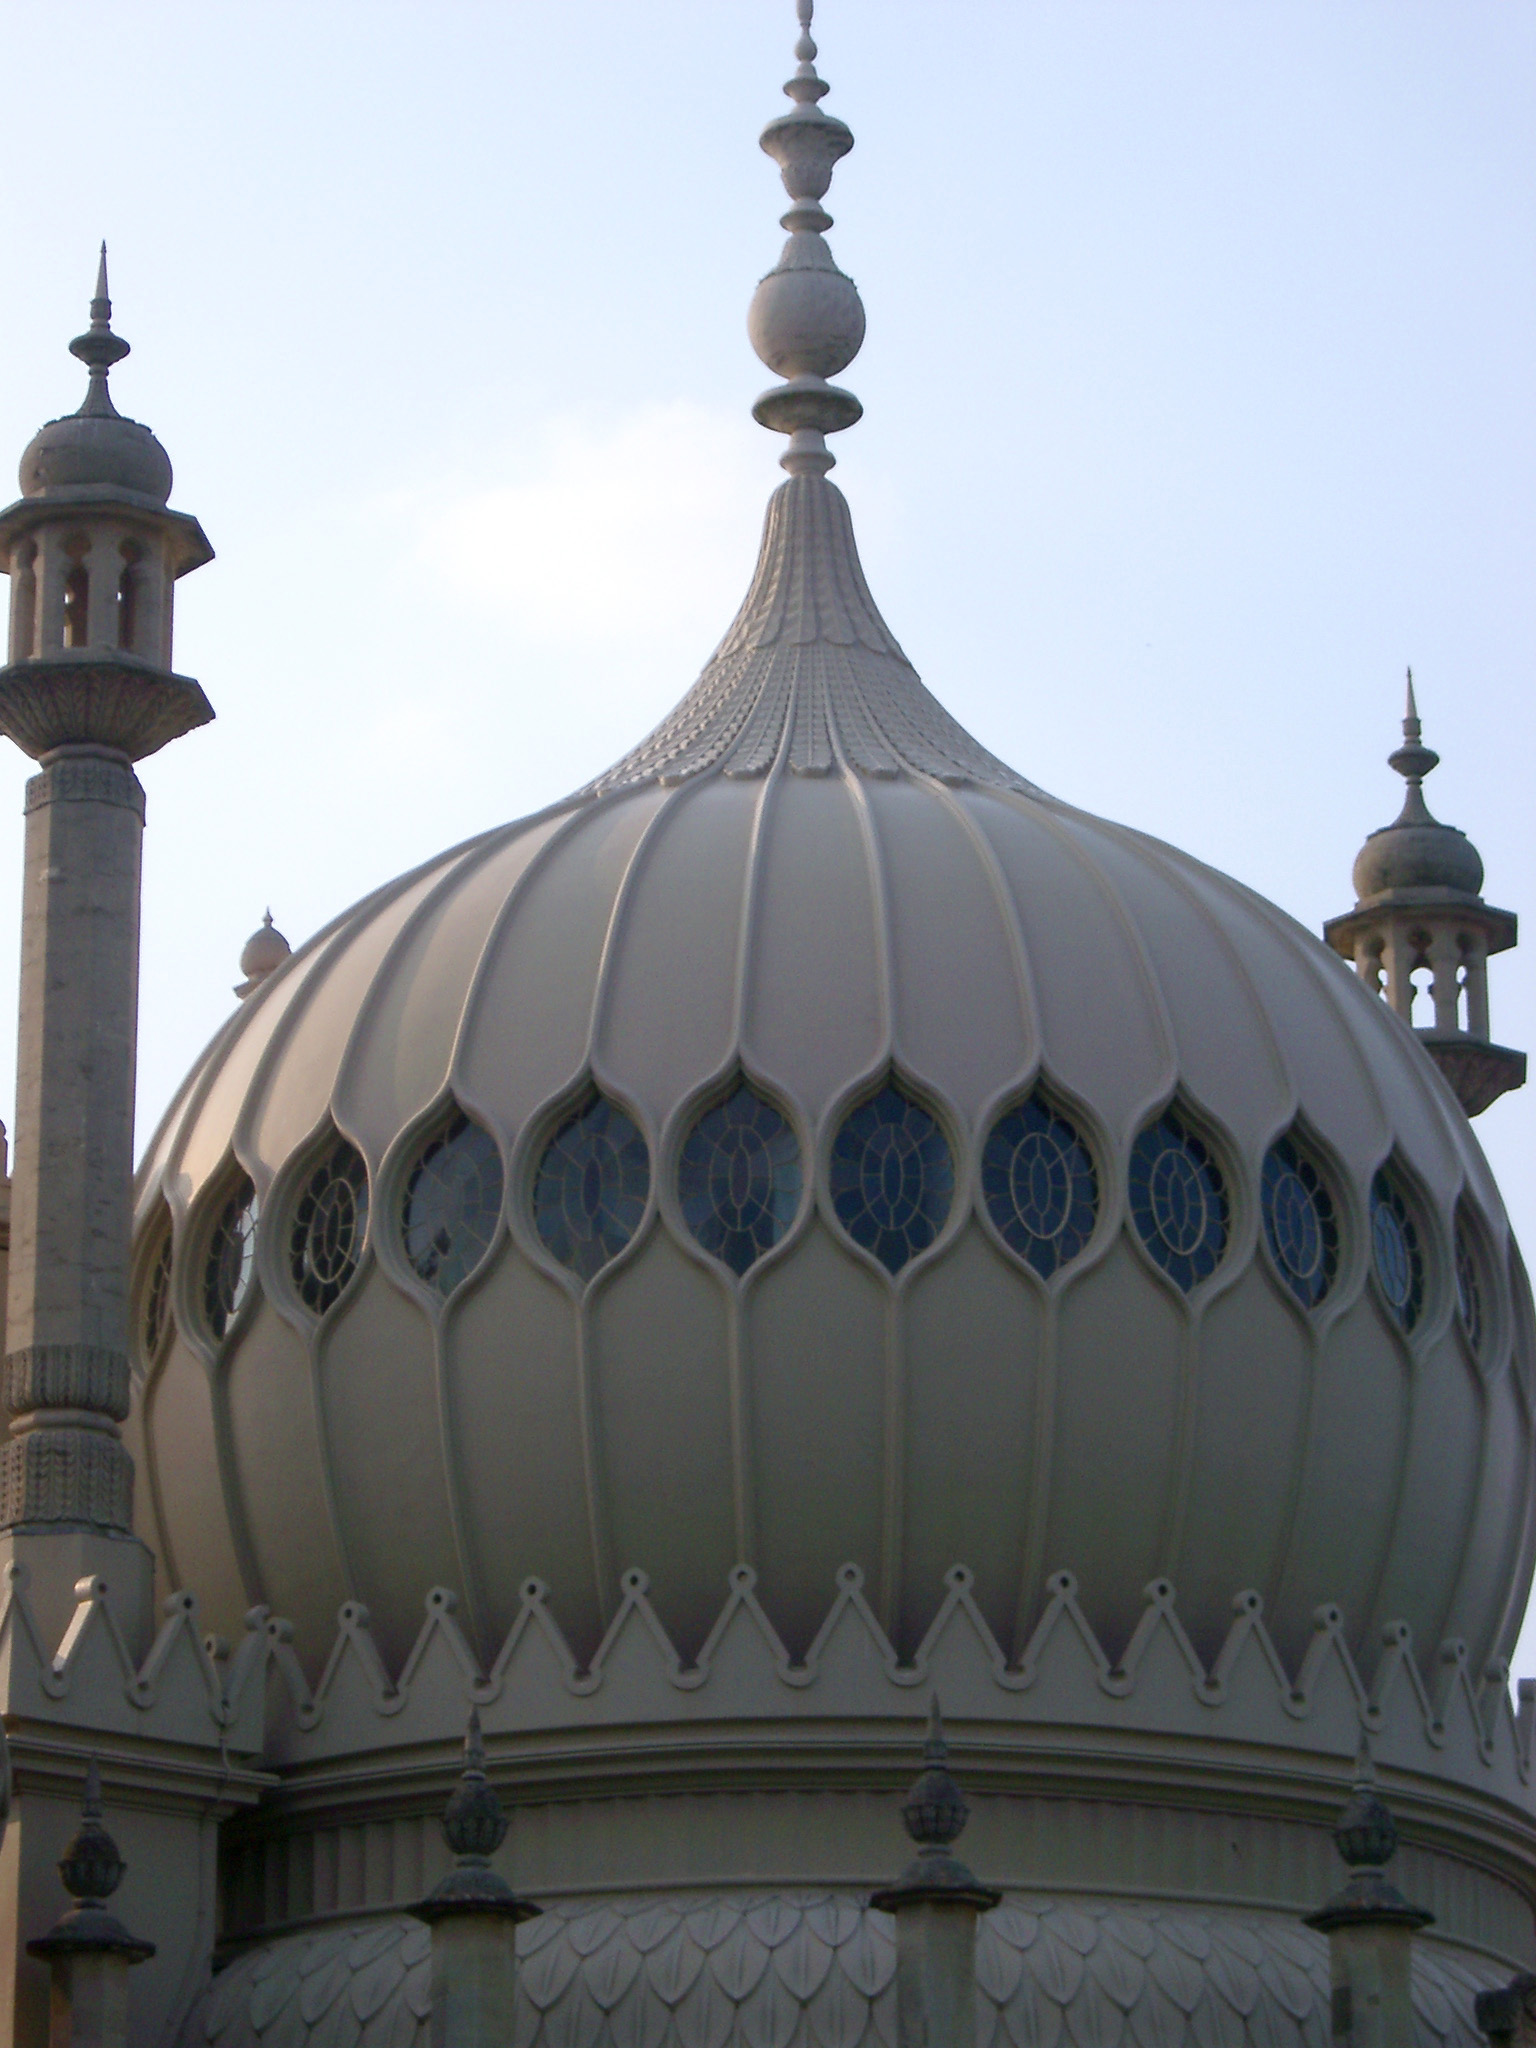 Exterior of the ornate onion dome at Brighton Royal Pavilion with its oriental Indian architectural style